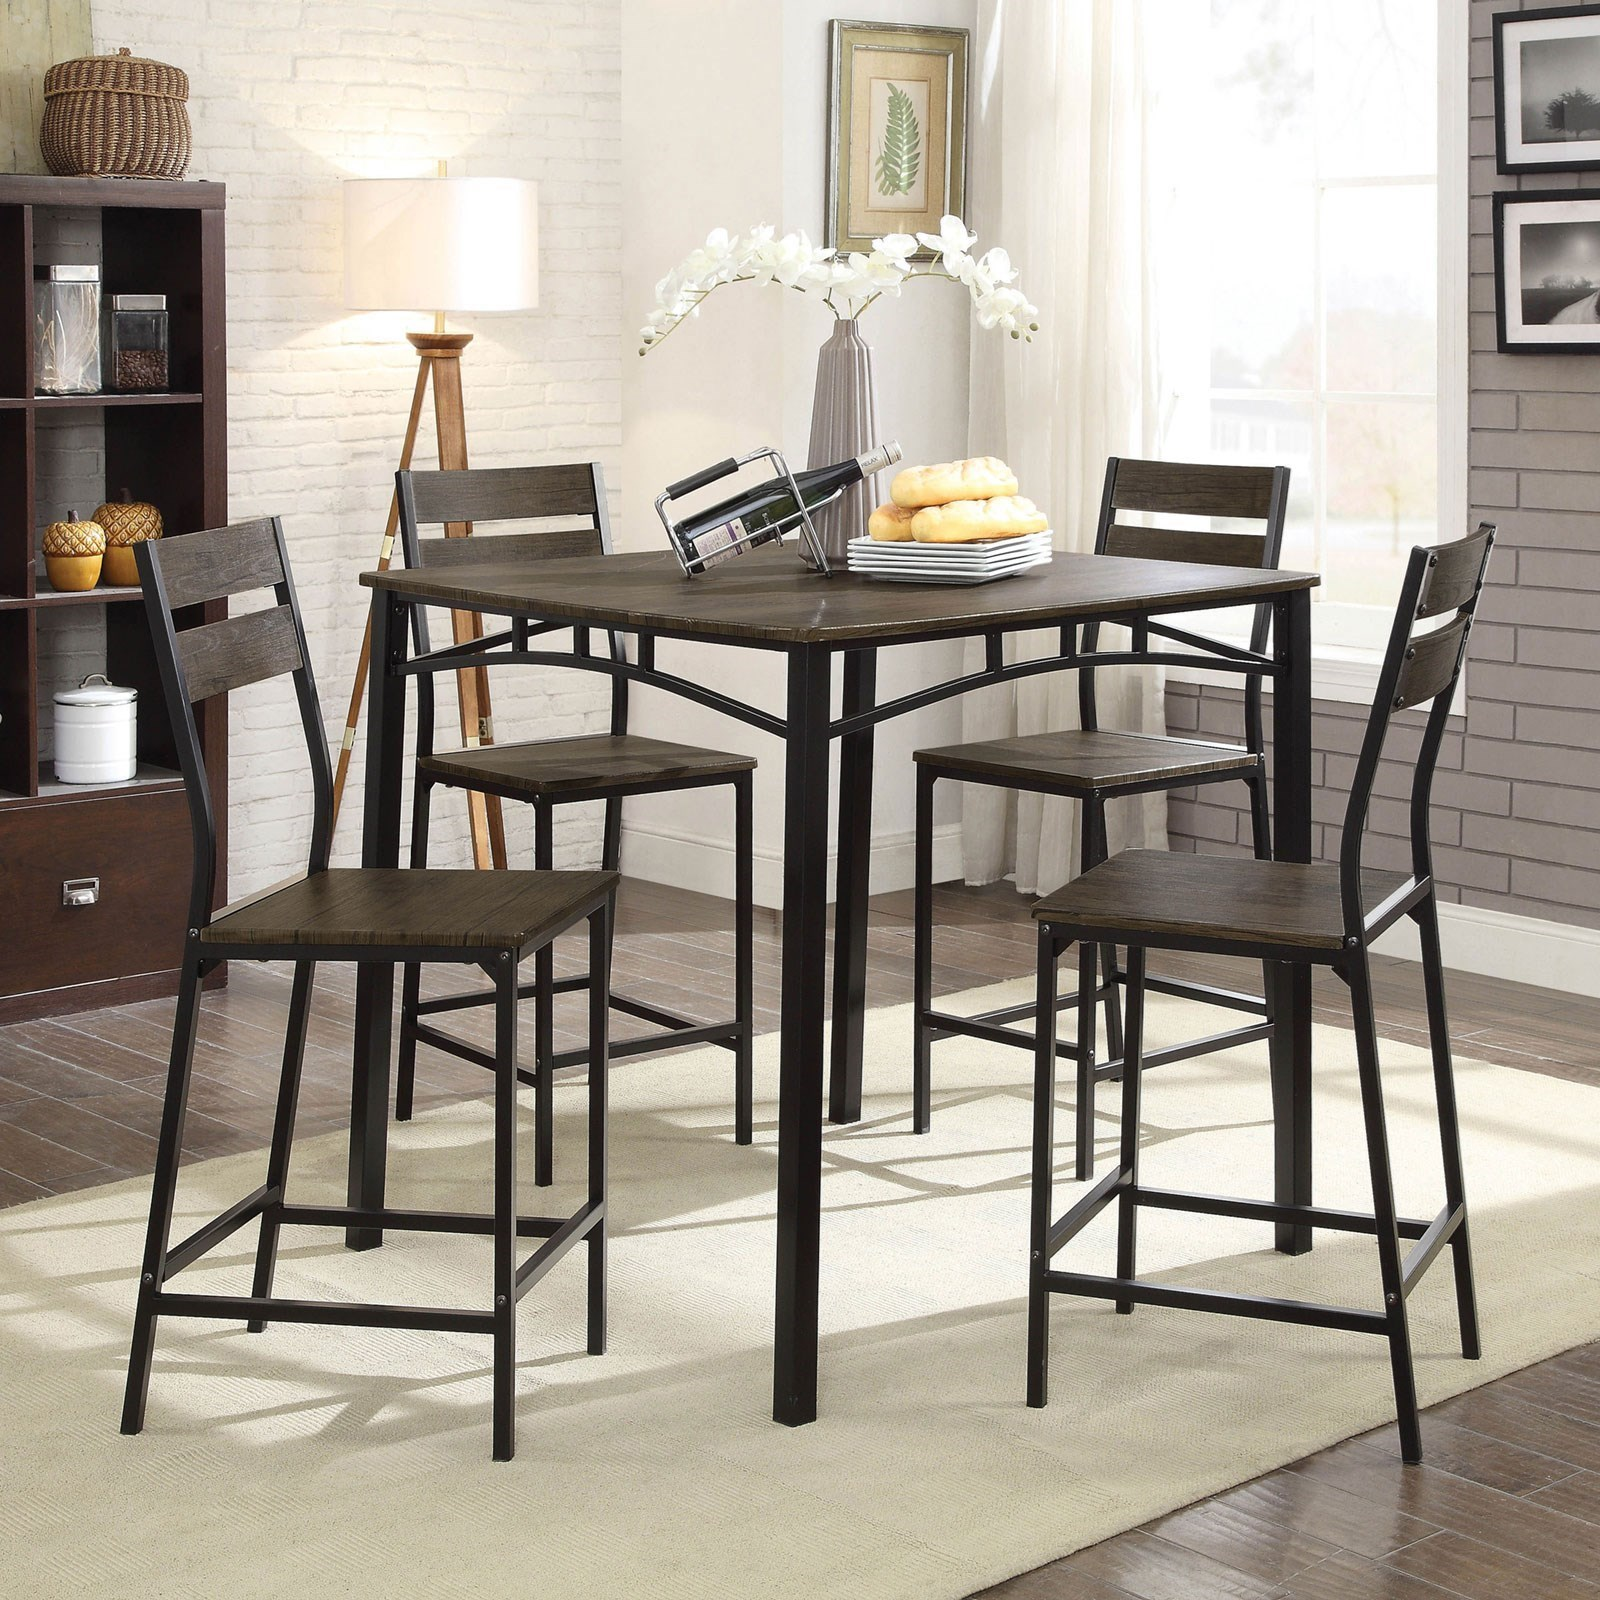 Westport 5-Piece Counter Height Table Set by Furniture of America at Nassau Furniture and Mattress